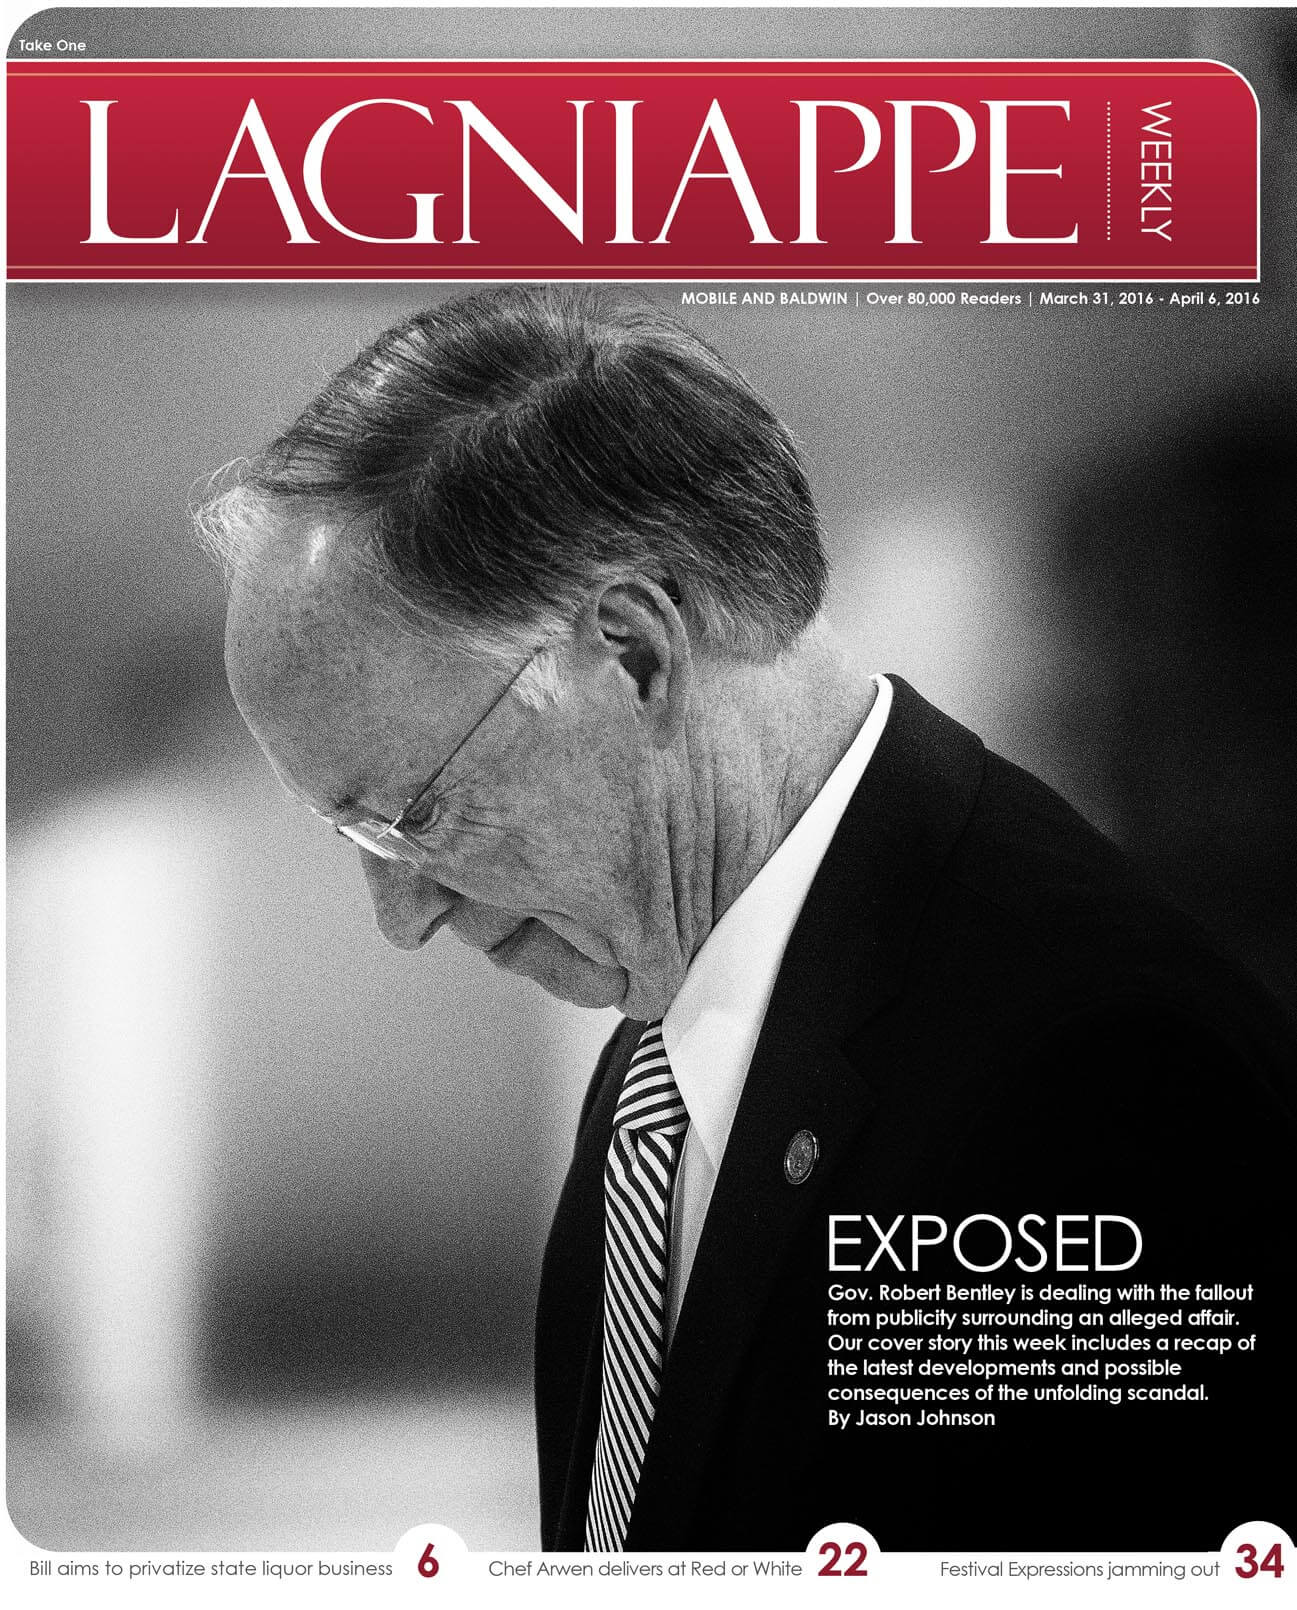 Collier's role in Bentley scandal, his history, Bayou La Batre and BP